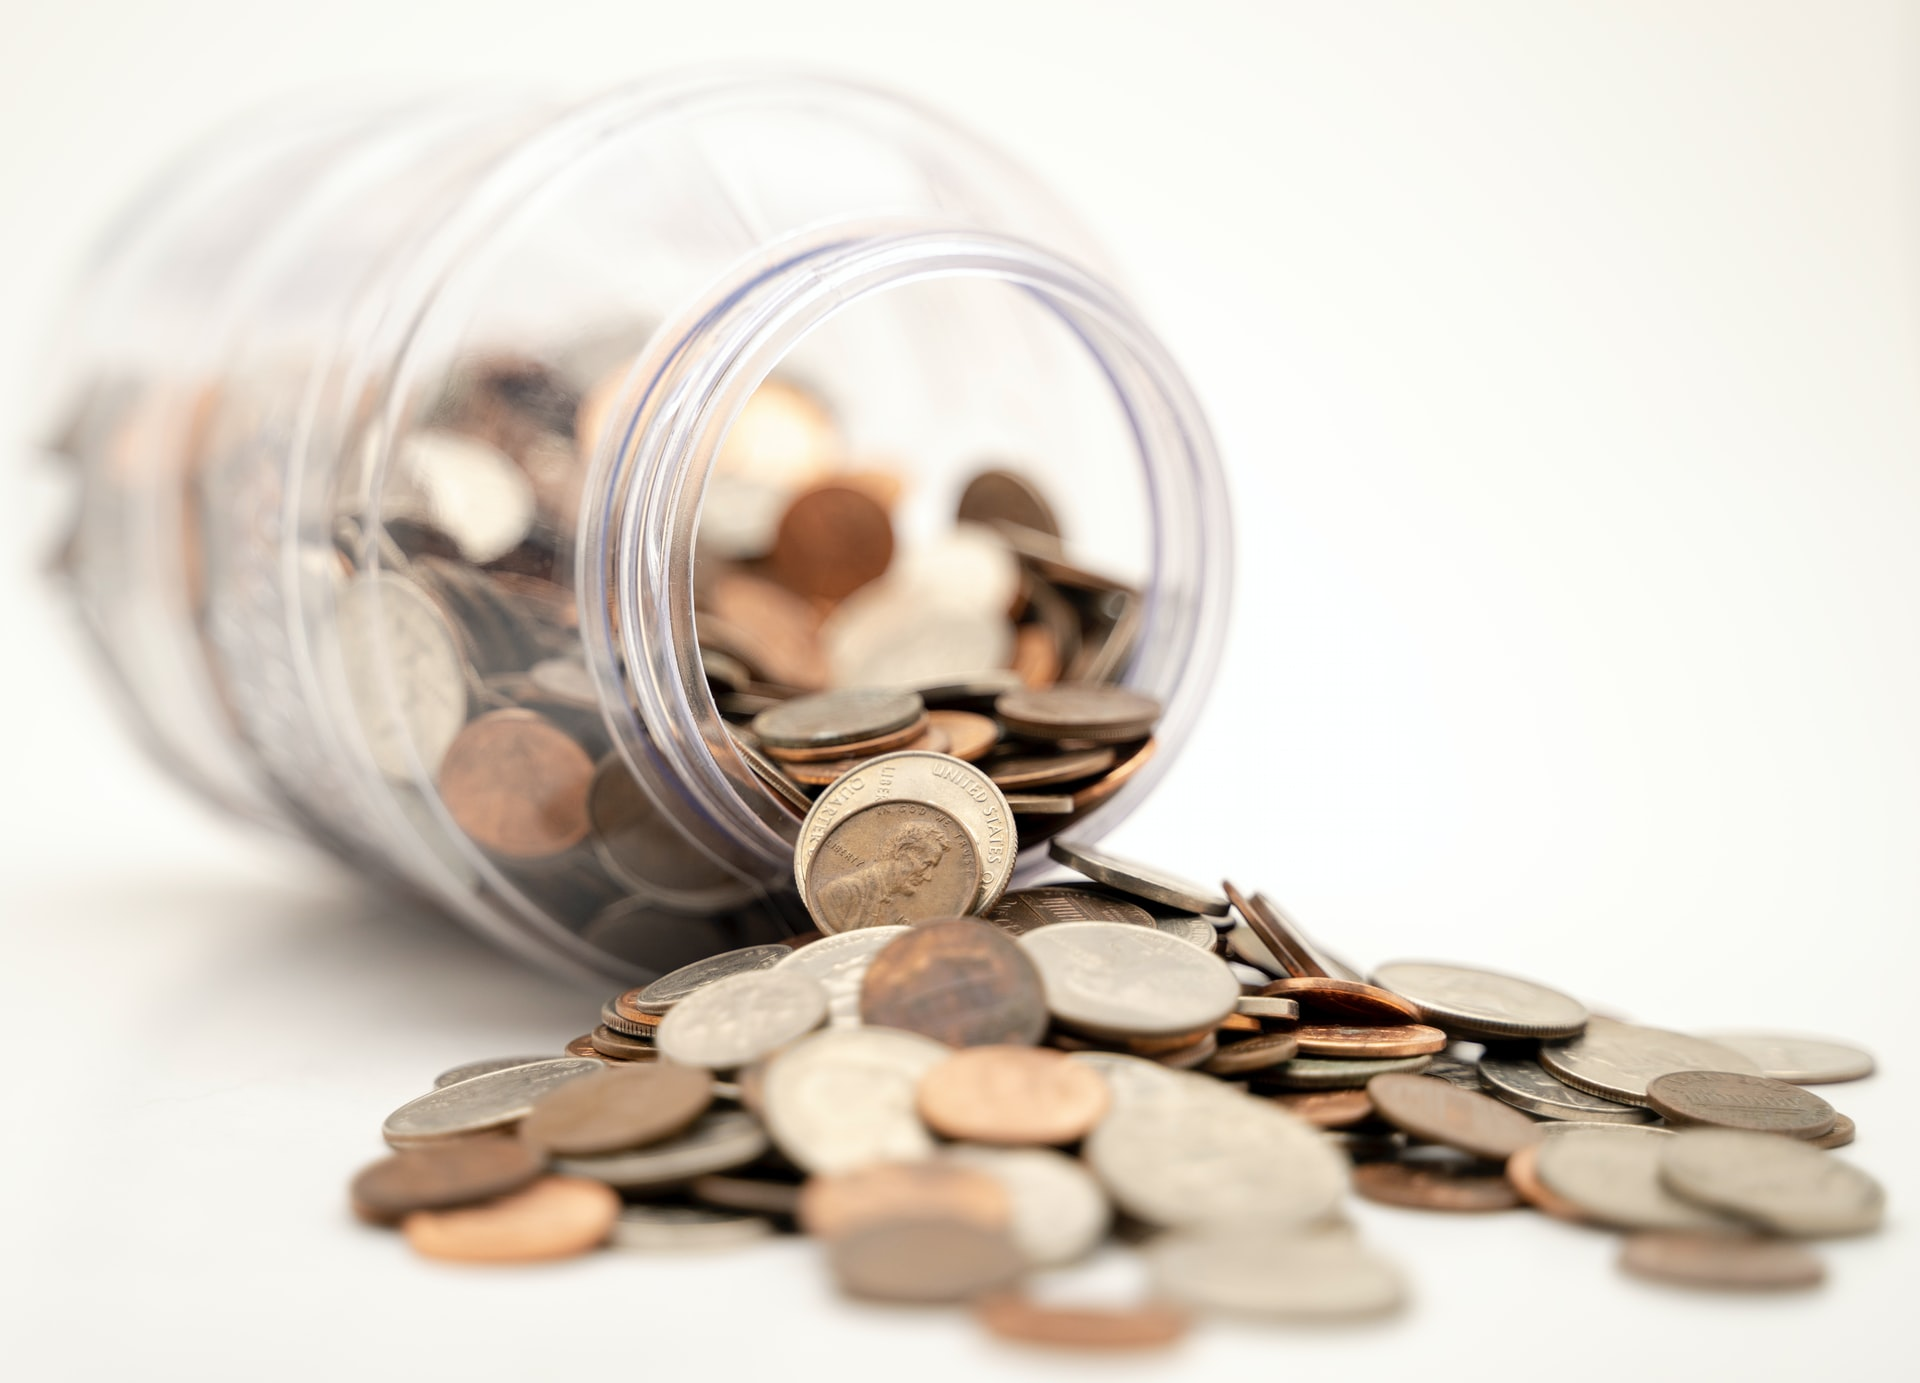 An image of a  jar filled with coins